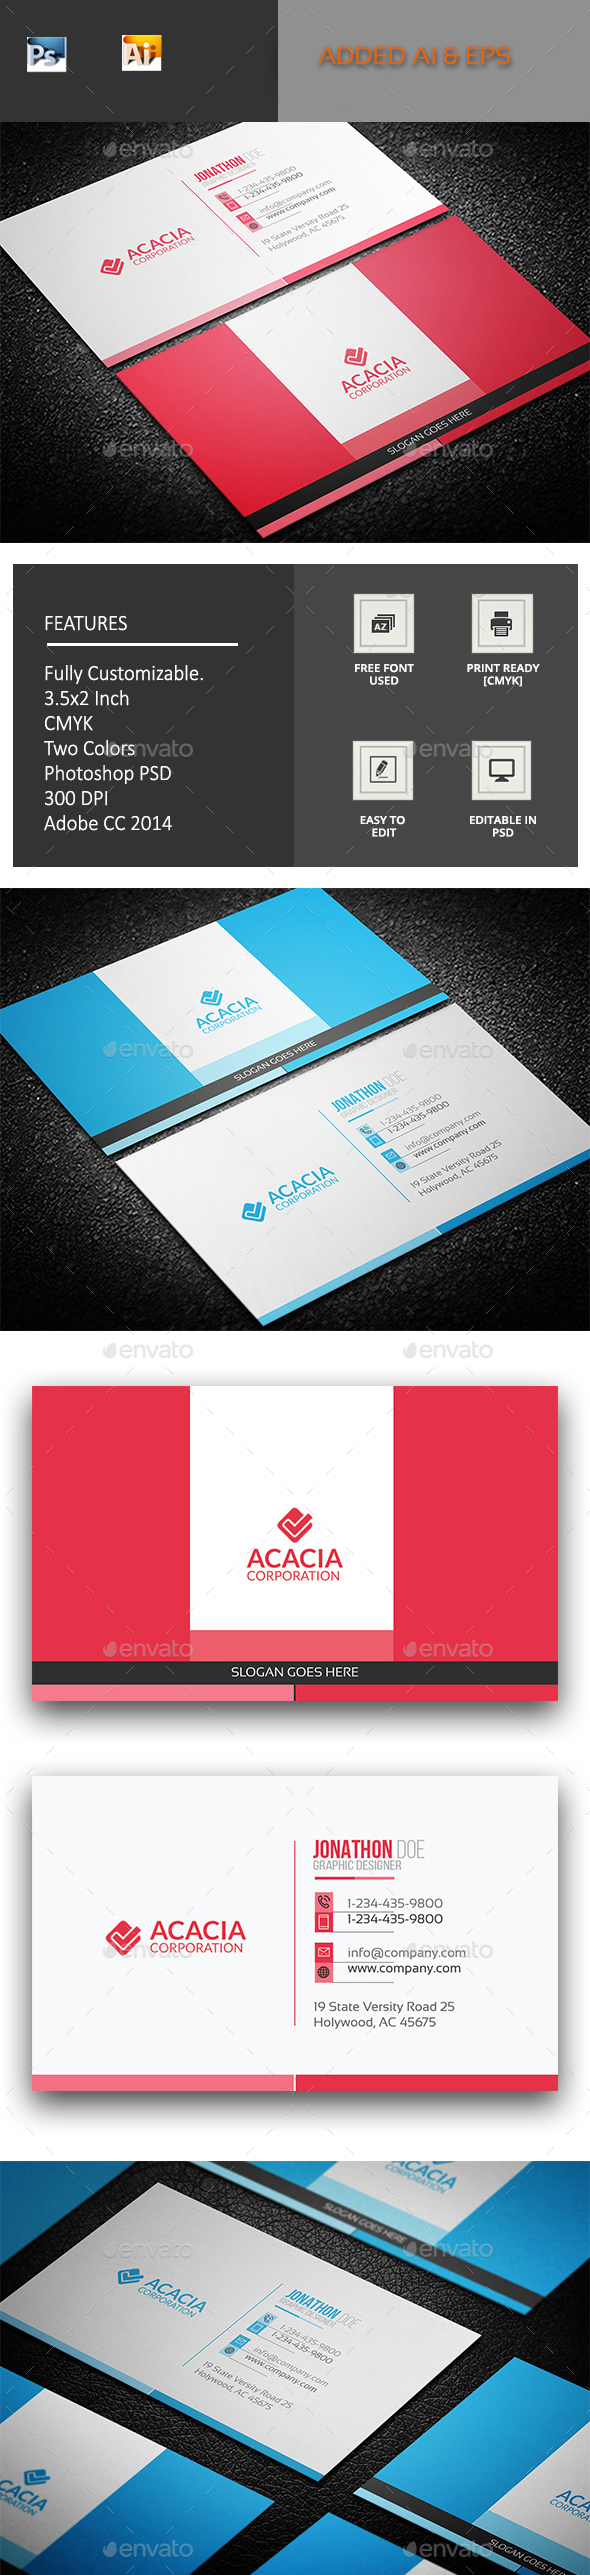 Saintm Business Card - Corporate Business Cards